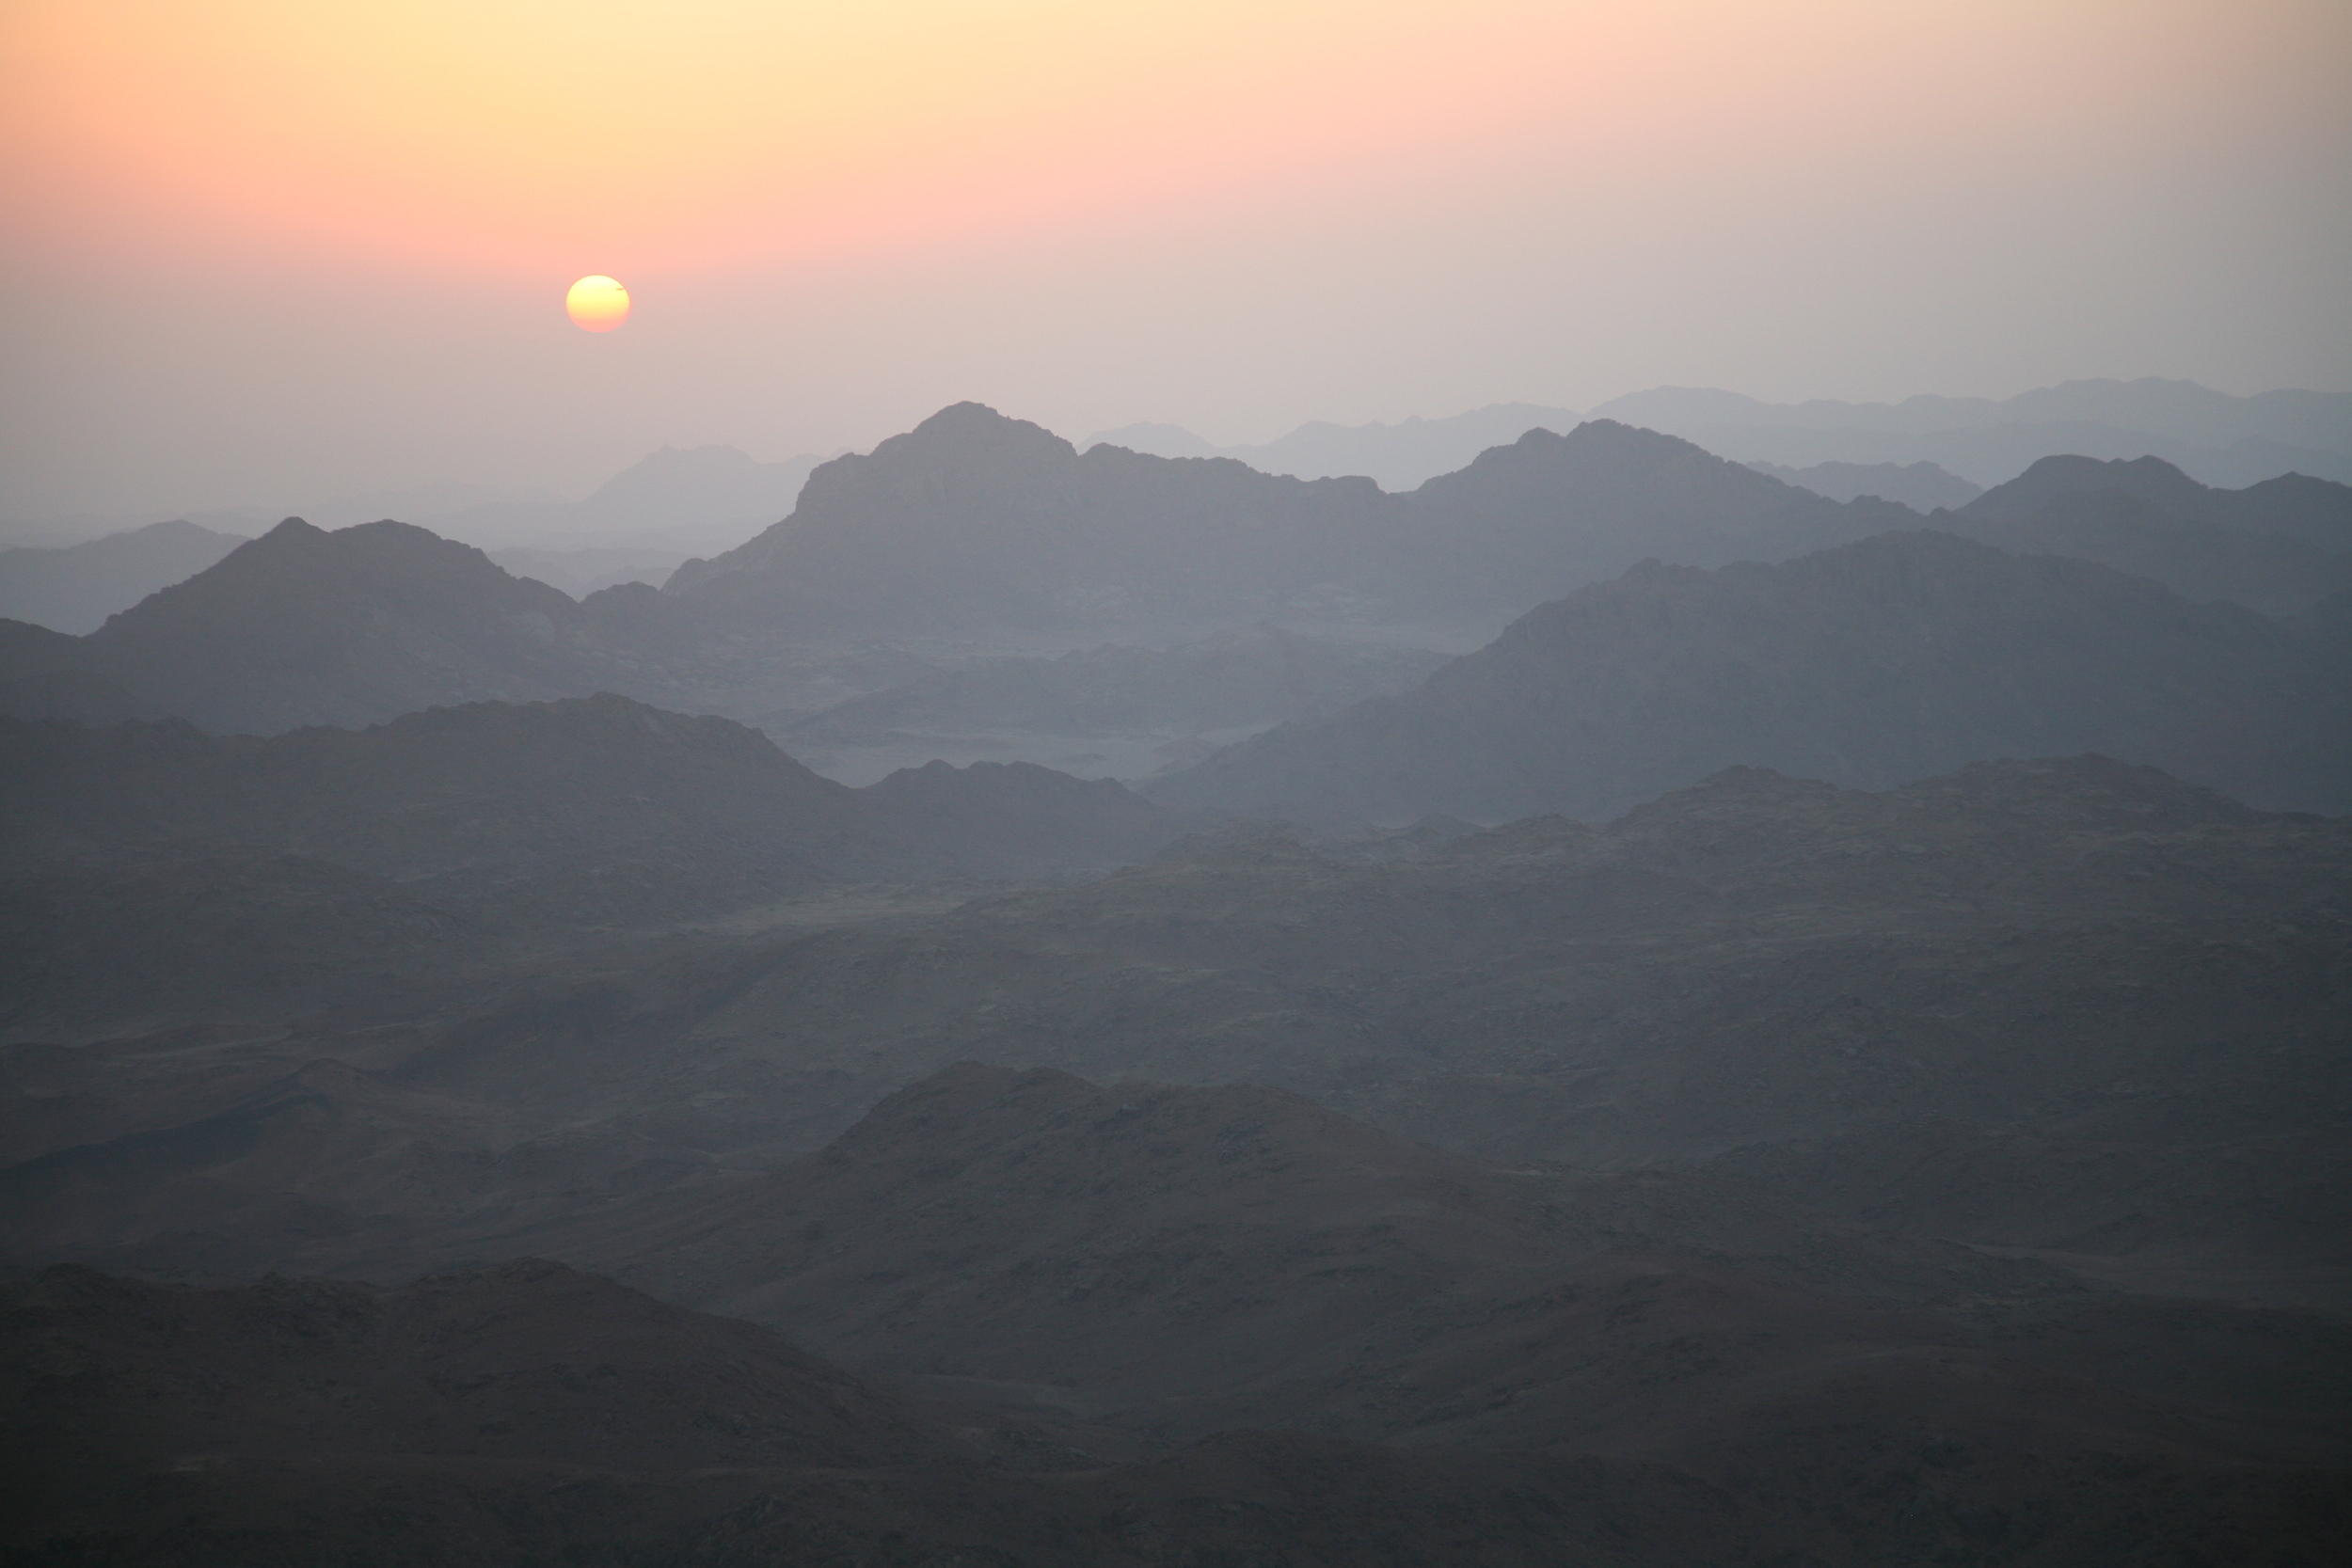 A rising sun over a misty, mountainous landscape at Mt Sinai, Egypt